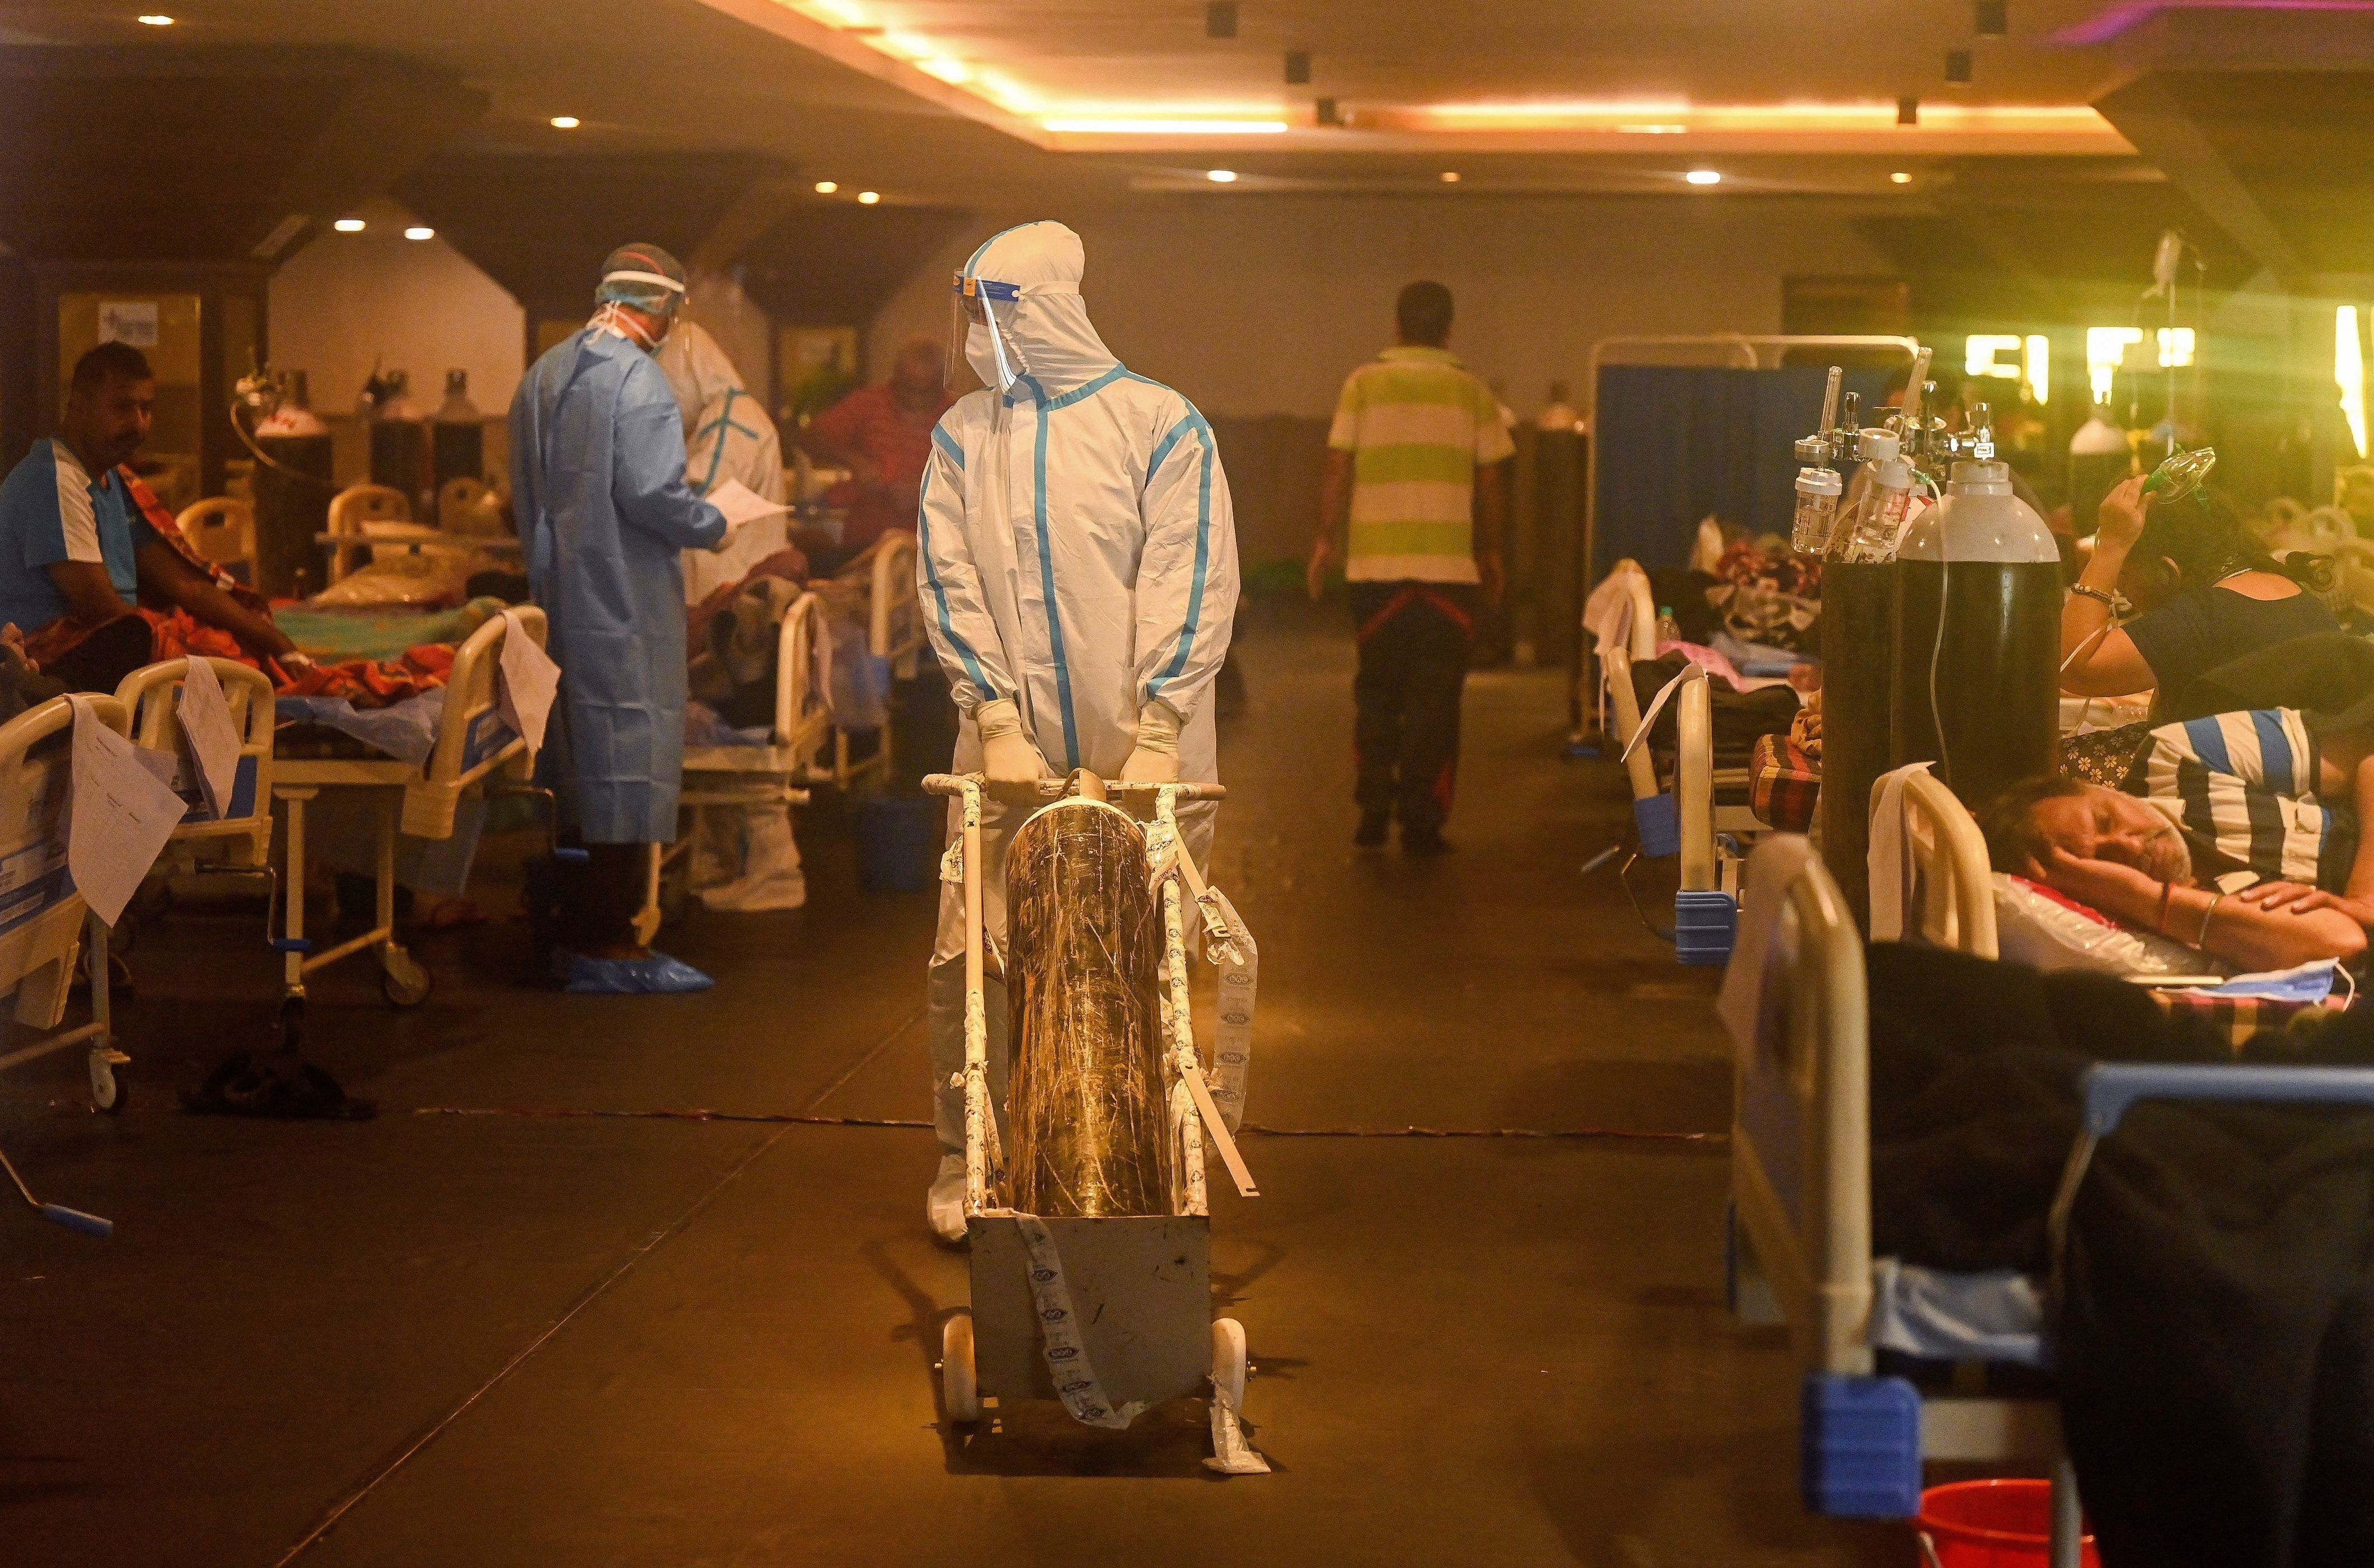 Health workers in protective gear tend to patients Wednesday in a banquet hall temporarily converted into a COVID-19 care center